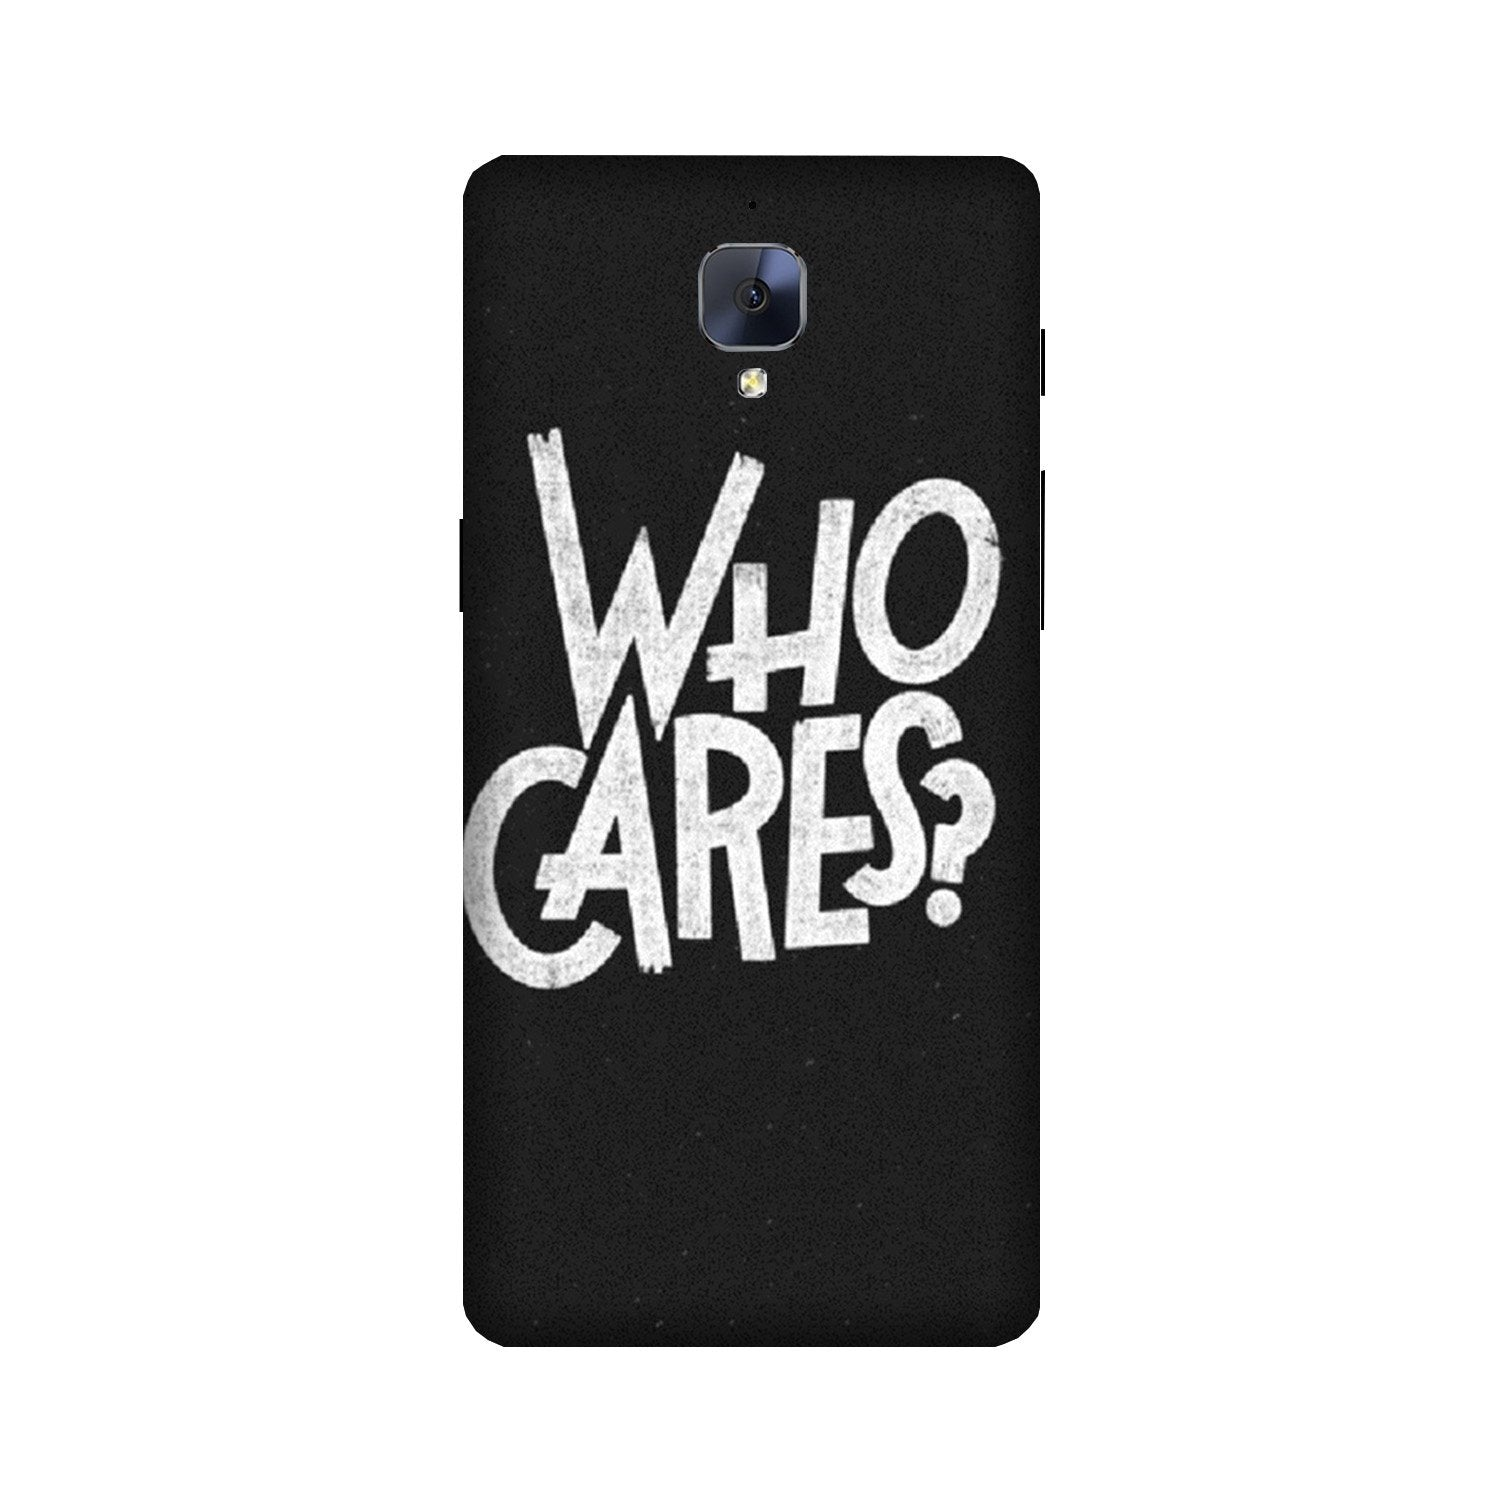 Who Cares Case for OnePlus 3/ 3T